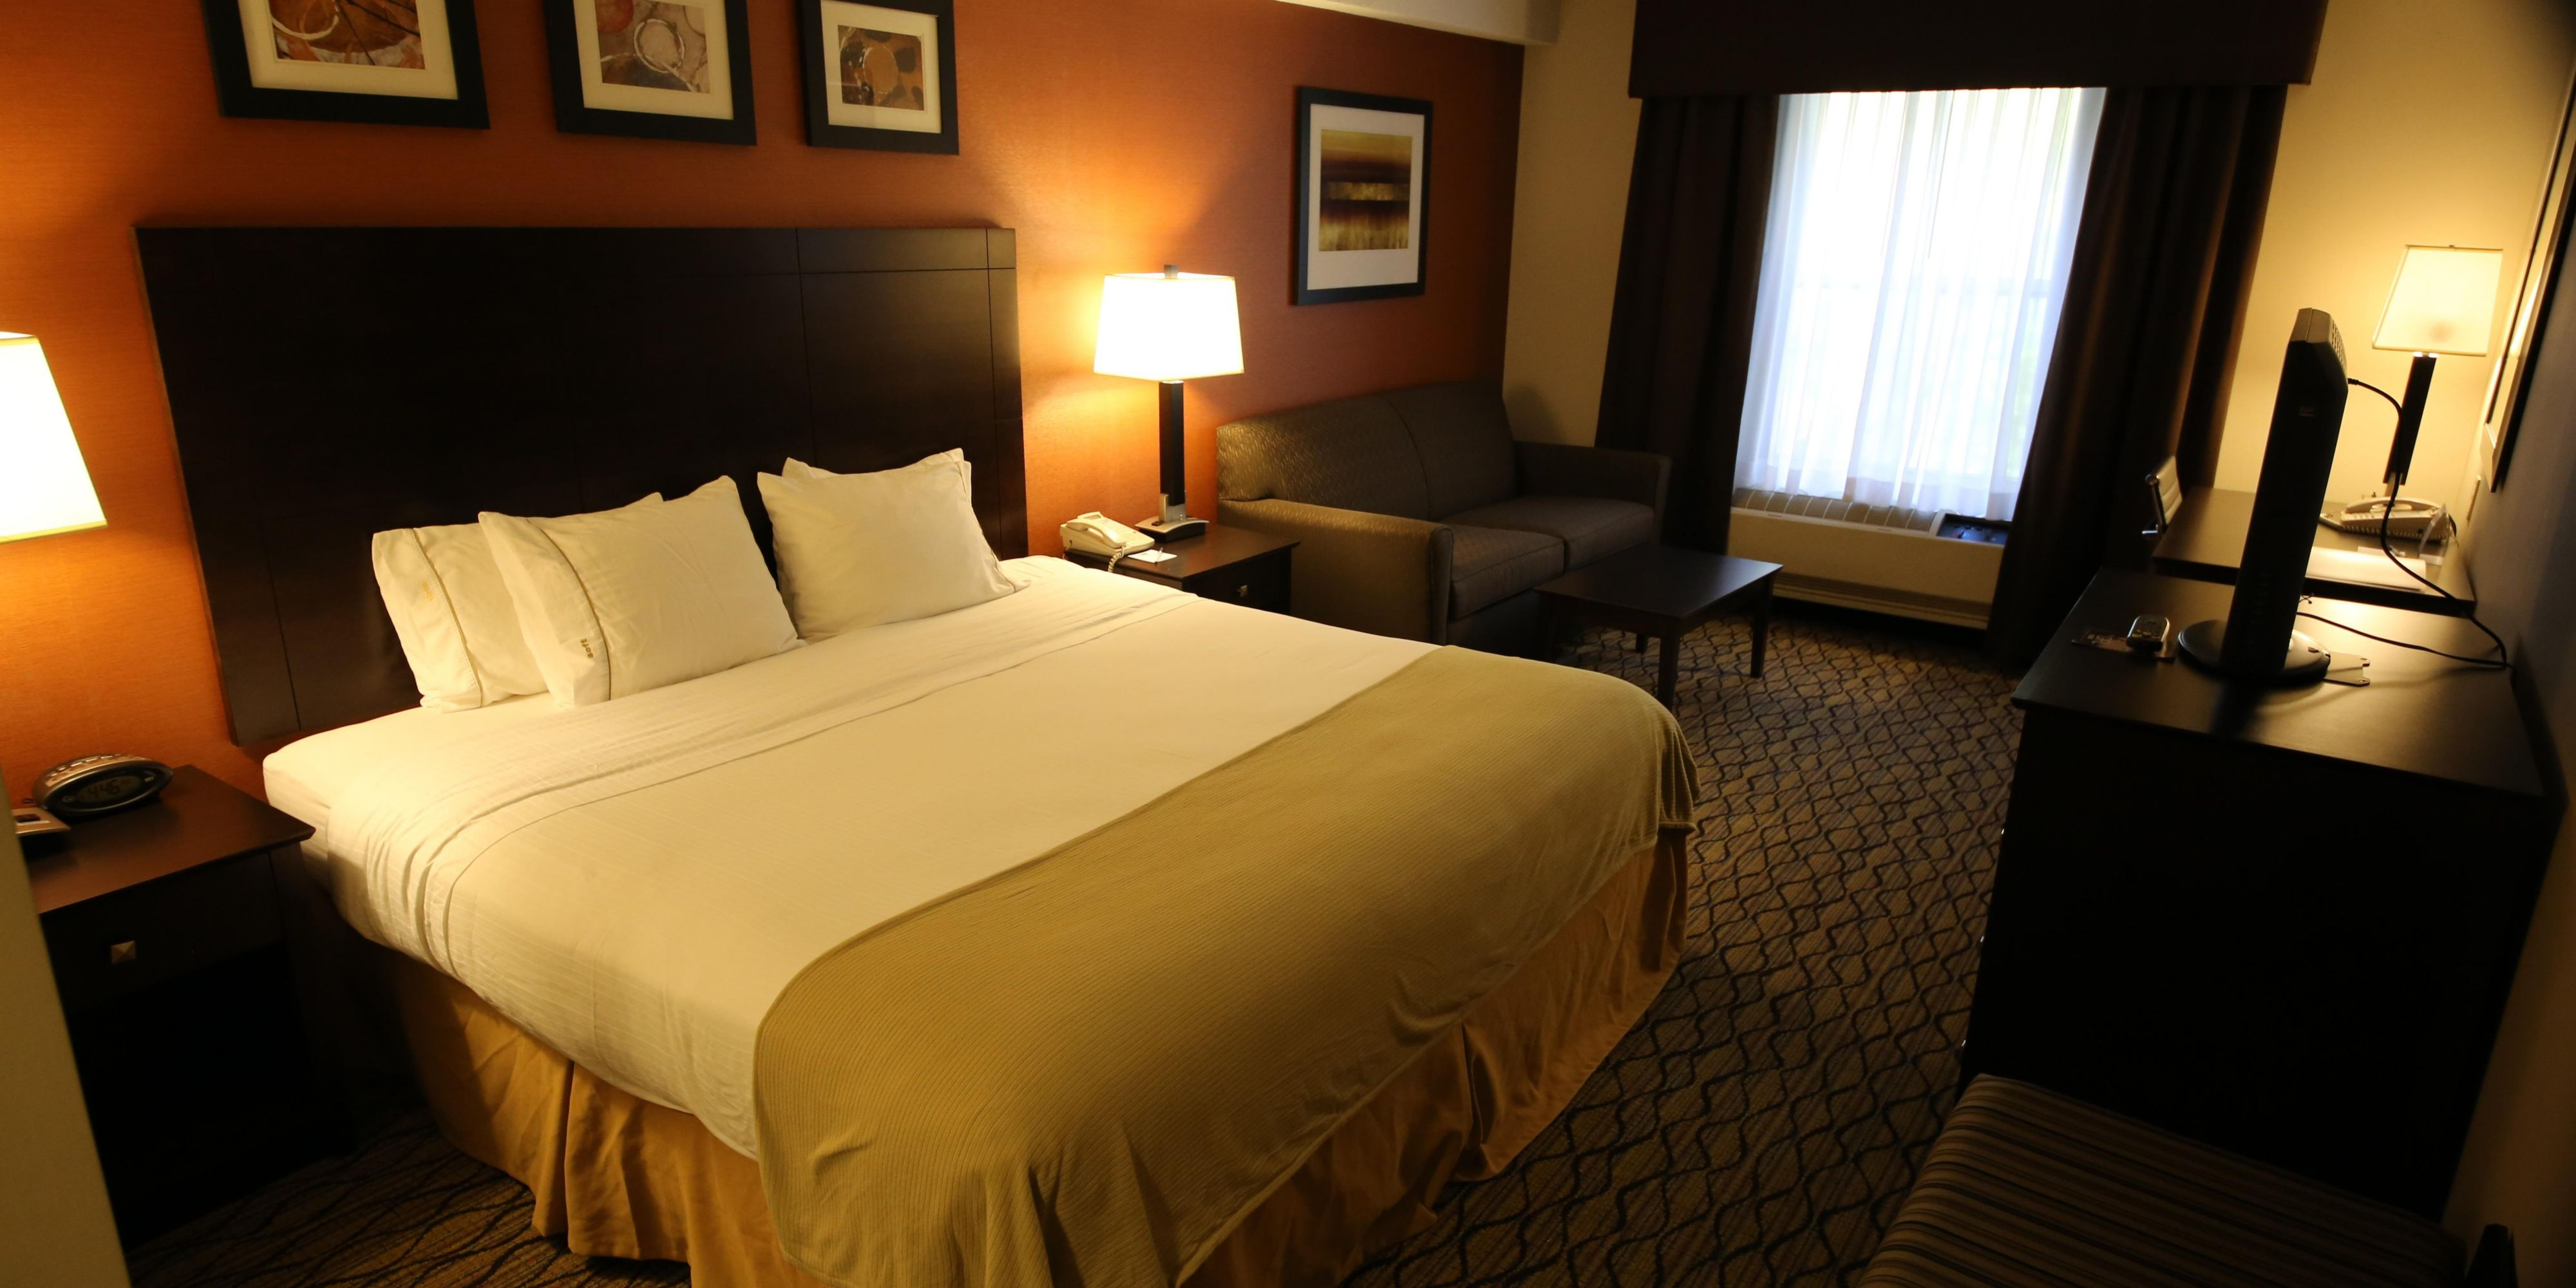 Holiday Inn Express And Suites Danbury 2532428540 2x1